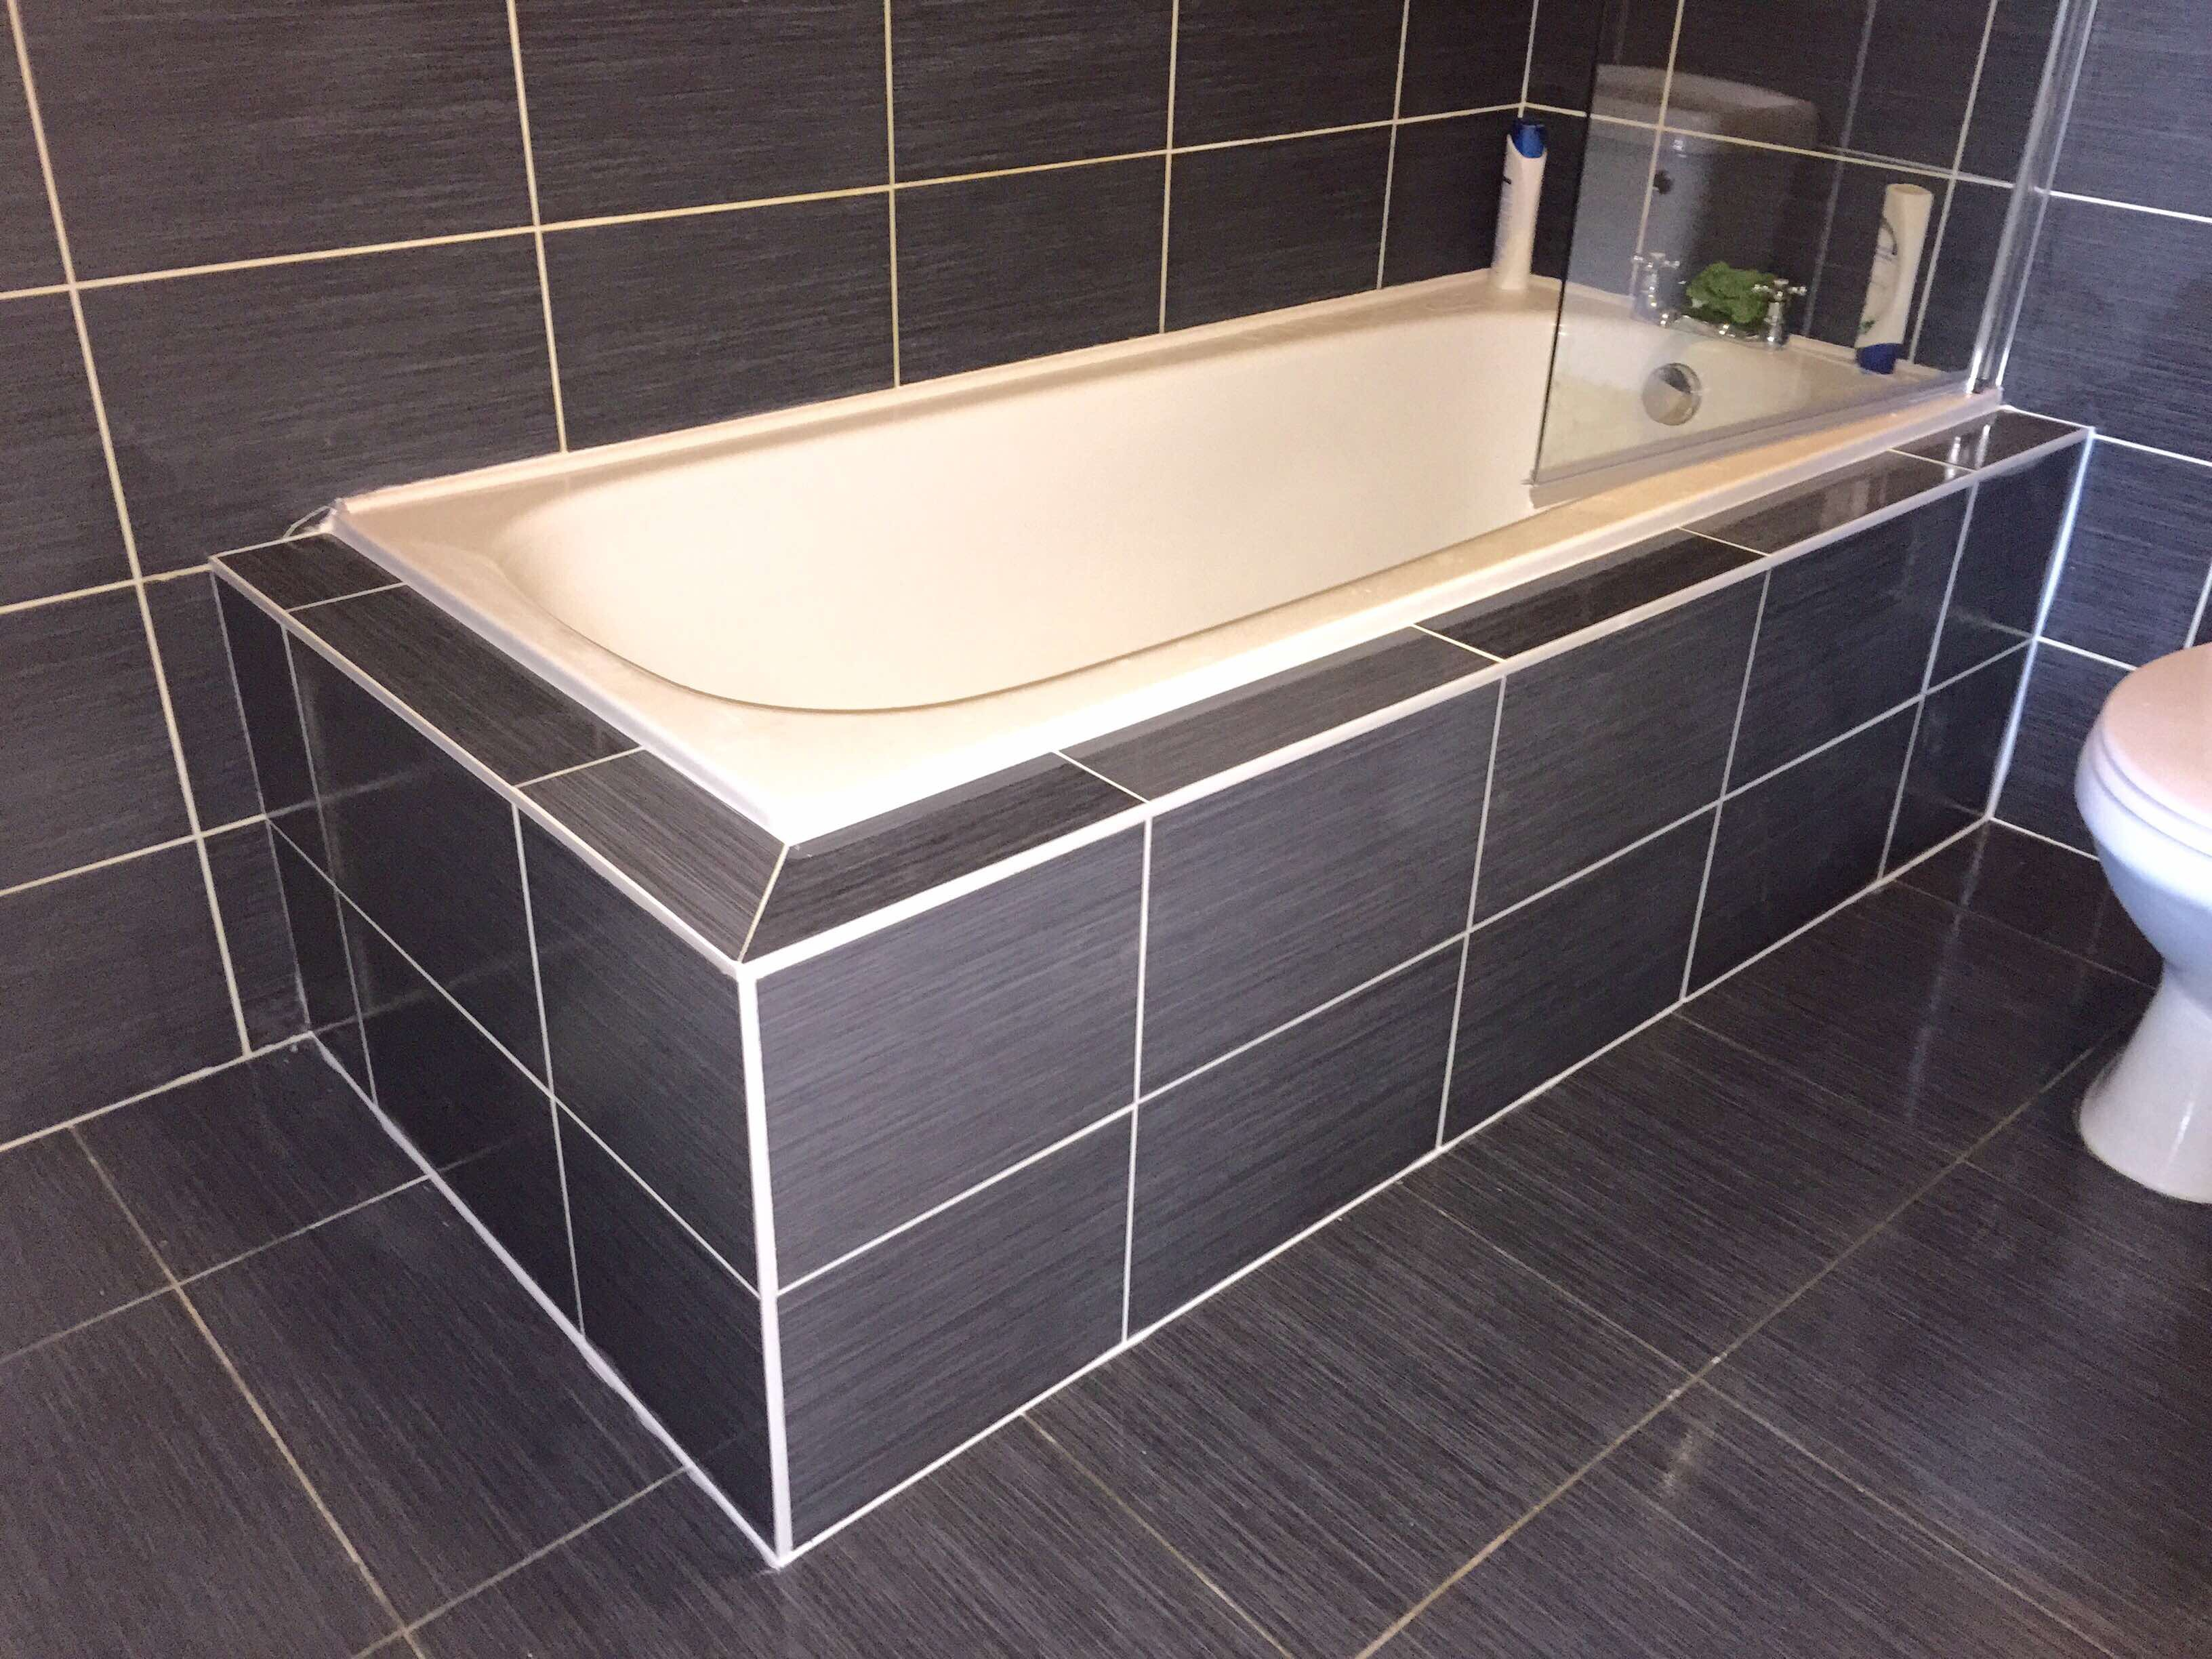 New Bath Tiling,Arklow